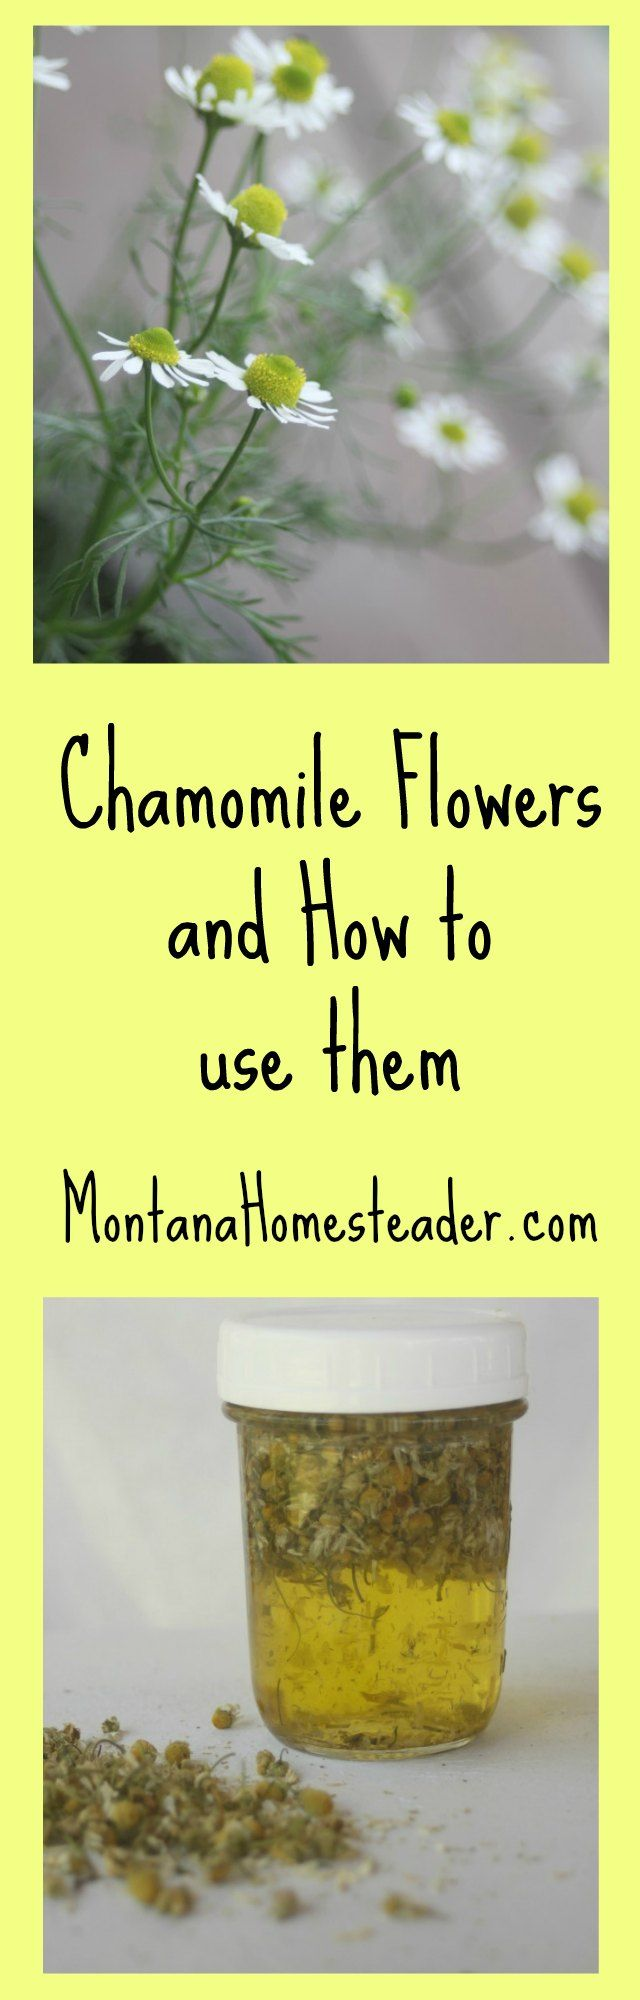 Chamomile Flowers and how to use them for drying, tea, chamomile oil for salves and lotions, and healing compress #NaturallyKind